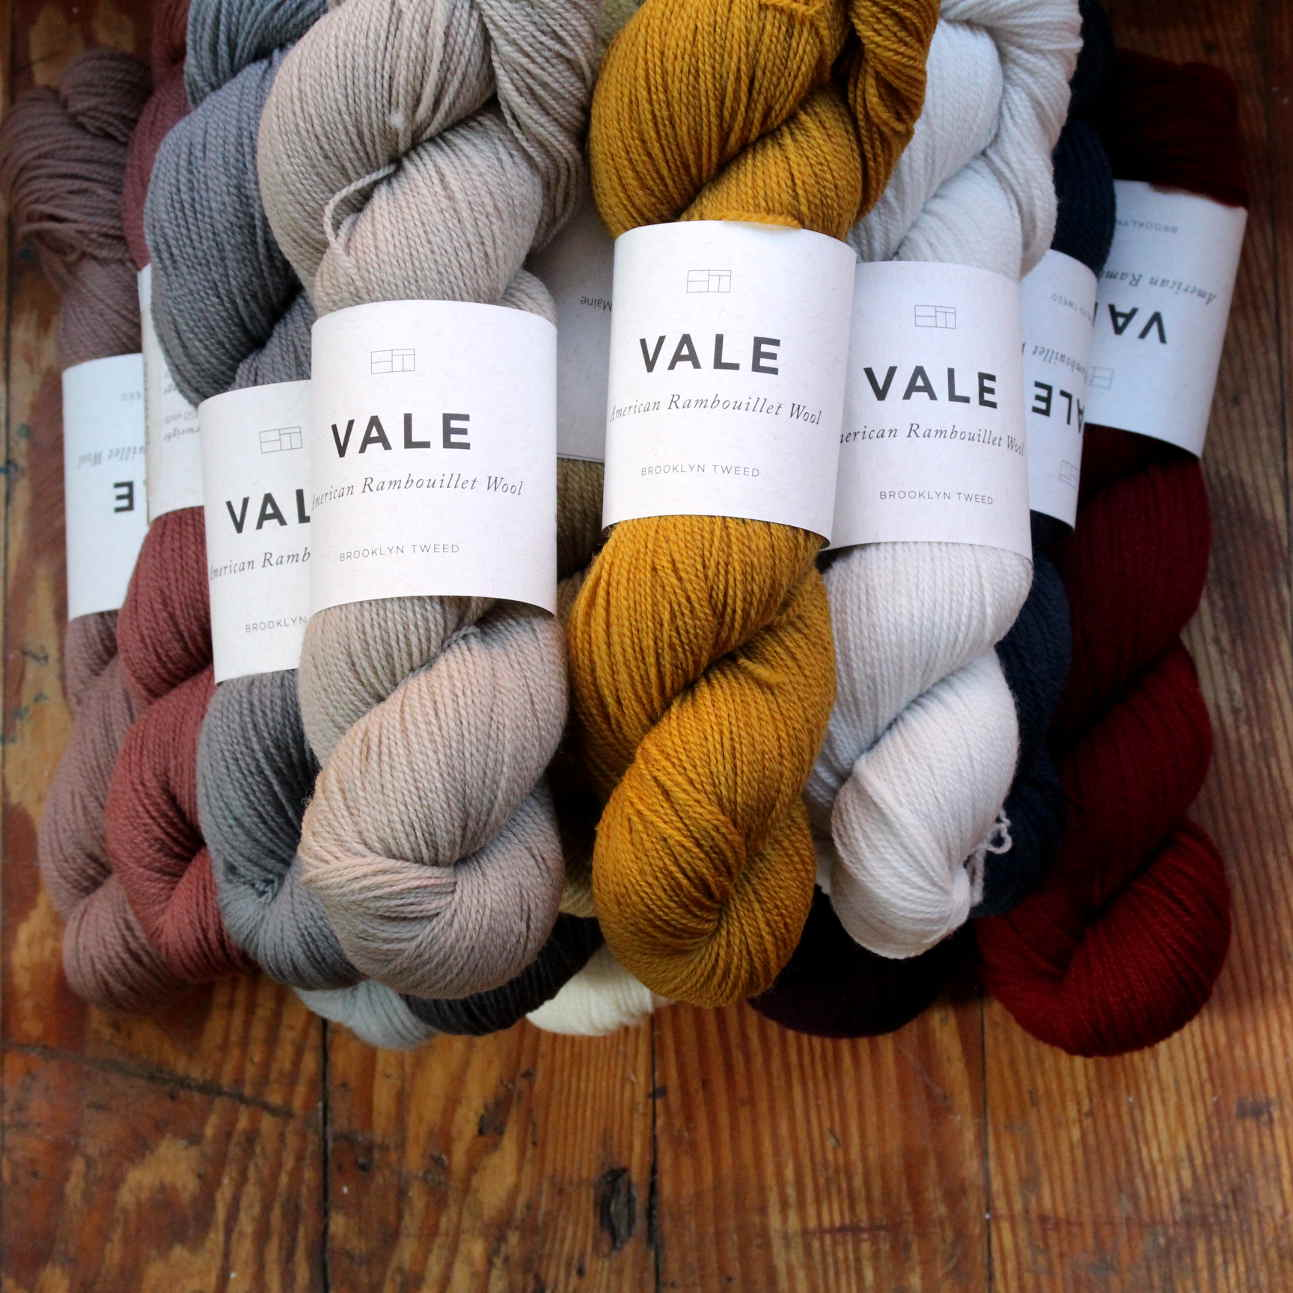 Brooklyn Tweed, Vale, American Wool, Lace Weight,